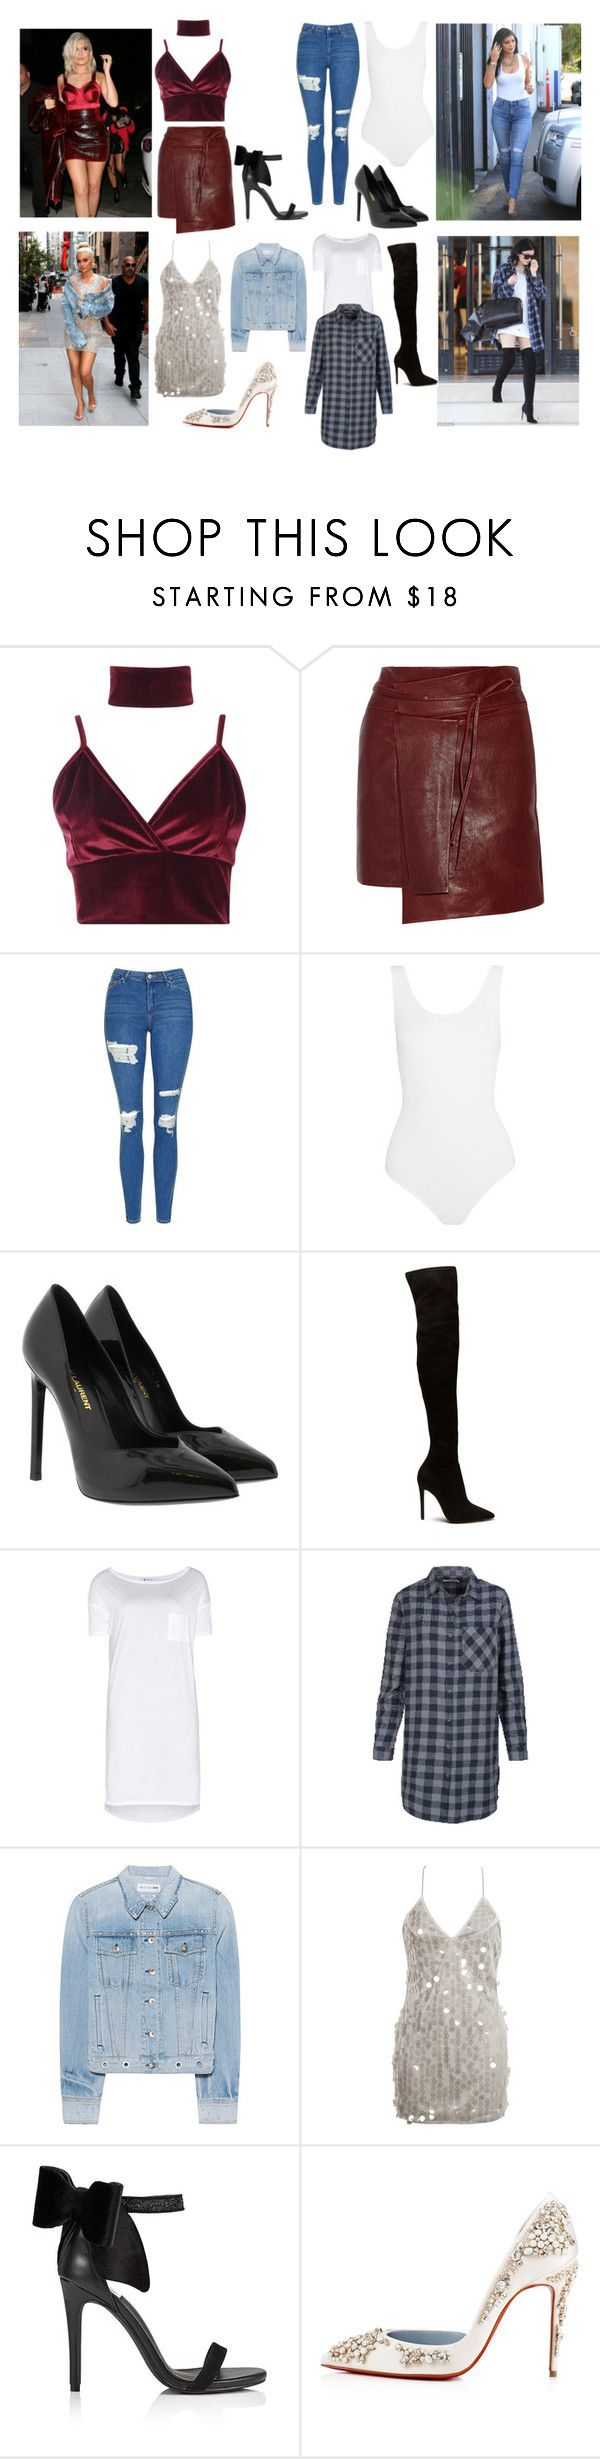 """4 Kylie Jnner Inspred outfits for every type of style"" by caroline-corradine ❤ liked on Polyvore featuring Kendall + Kylie, 7 For All Mankind, Boohoo, Isabel Marant, Topshop, Yummie by Heather Thomson, Yves Saint Laurent, T By Alexander Wang, rag & bone and WithChic"